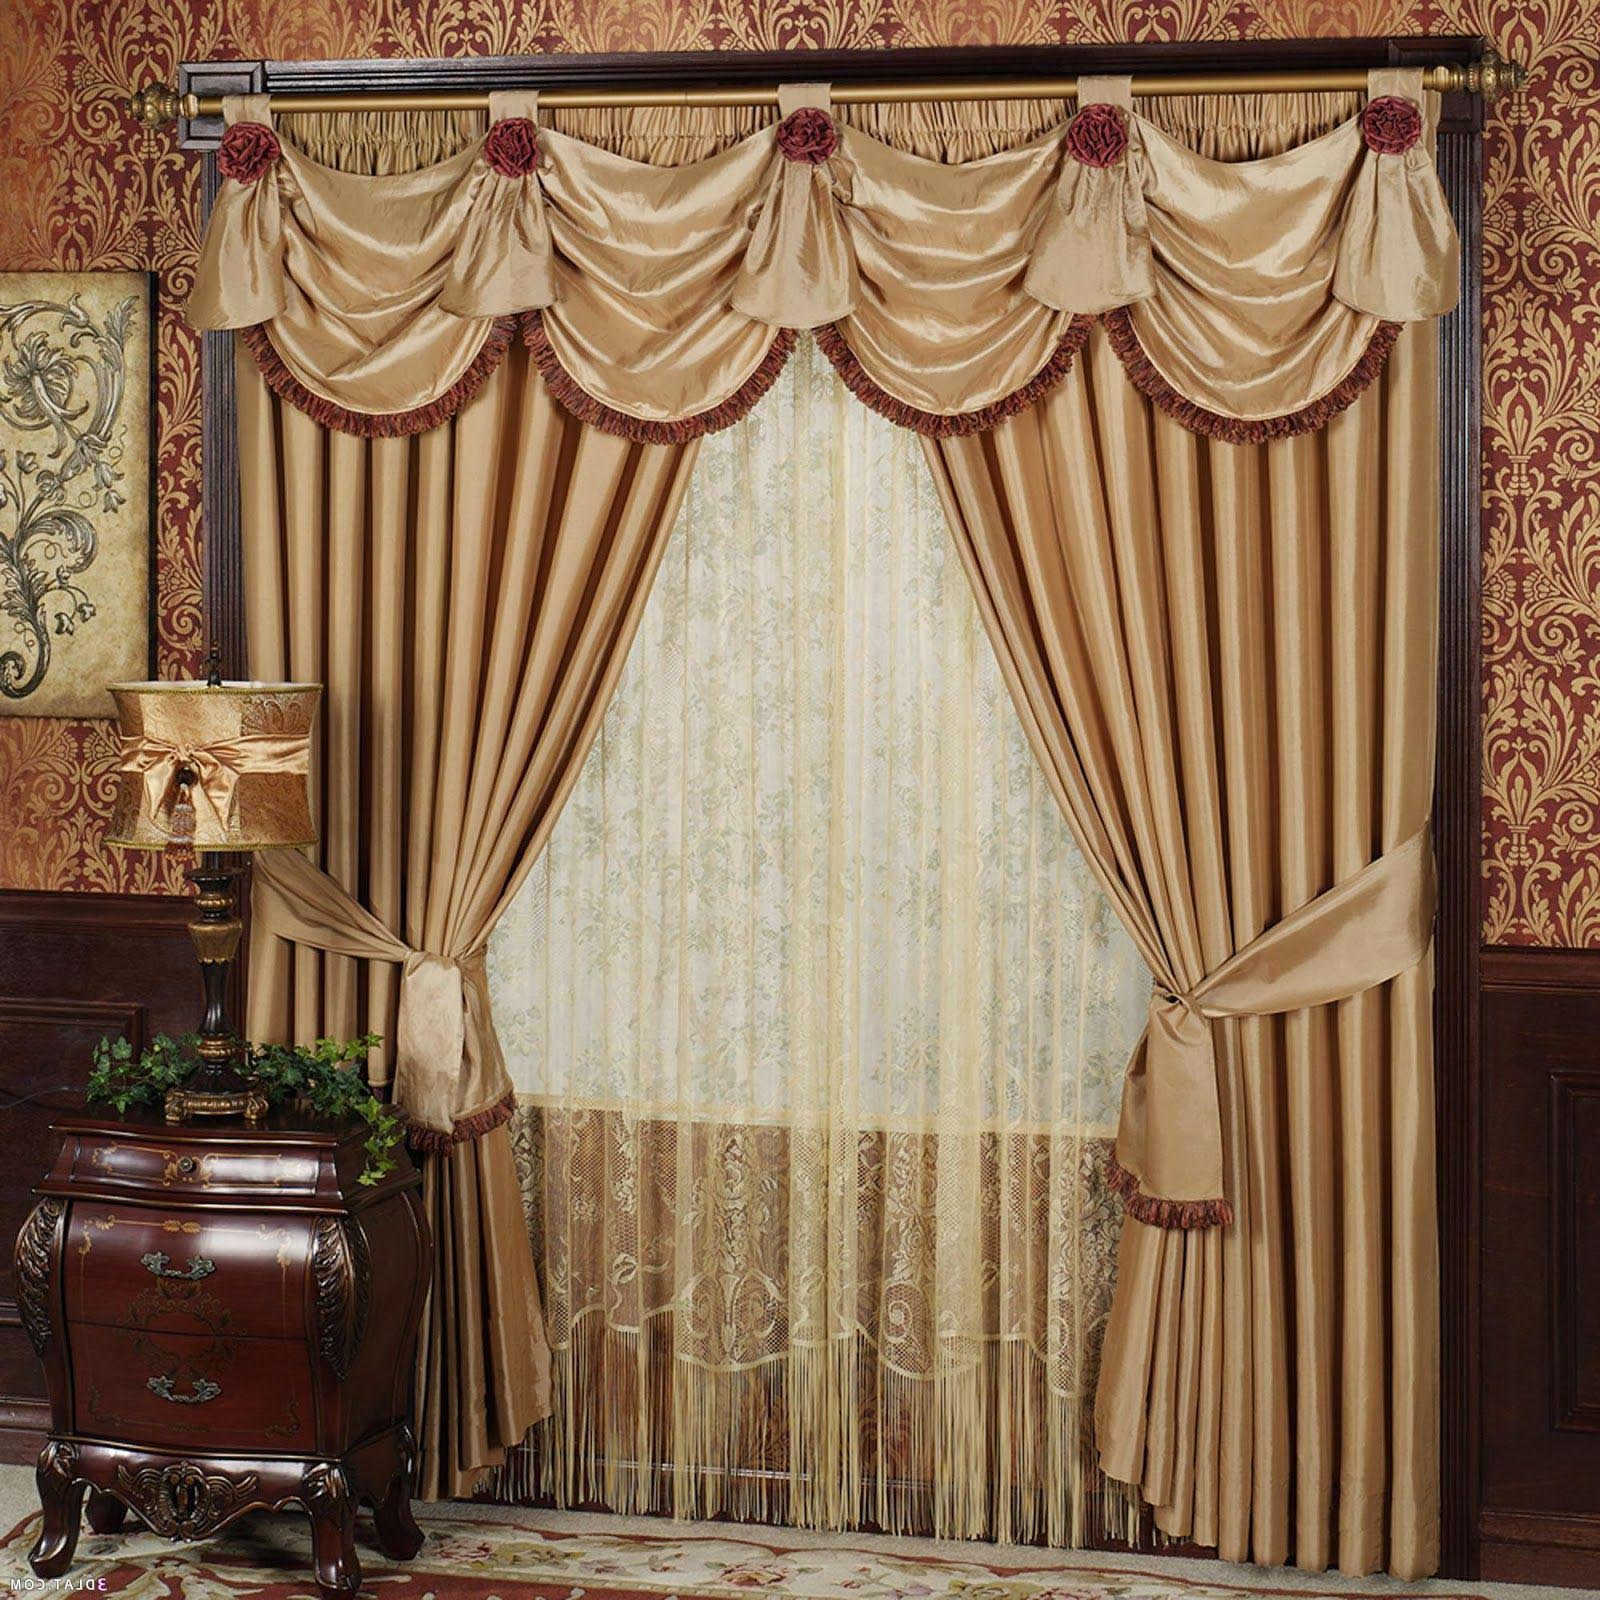 Living Room D S With Valances